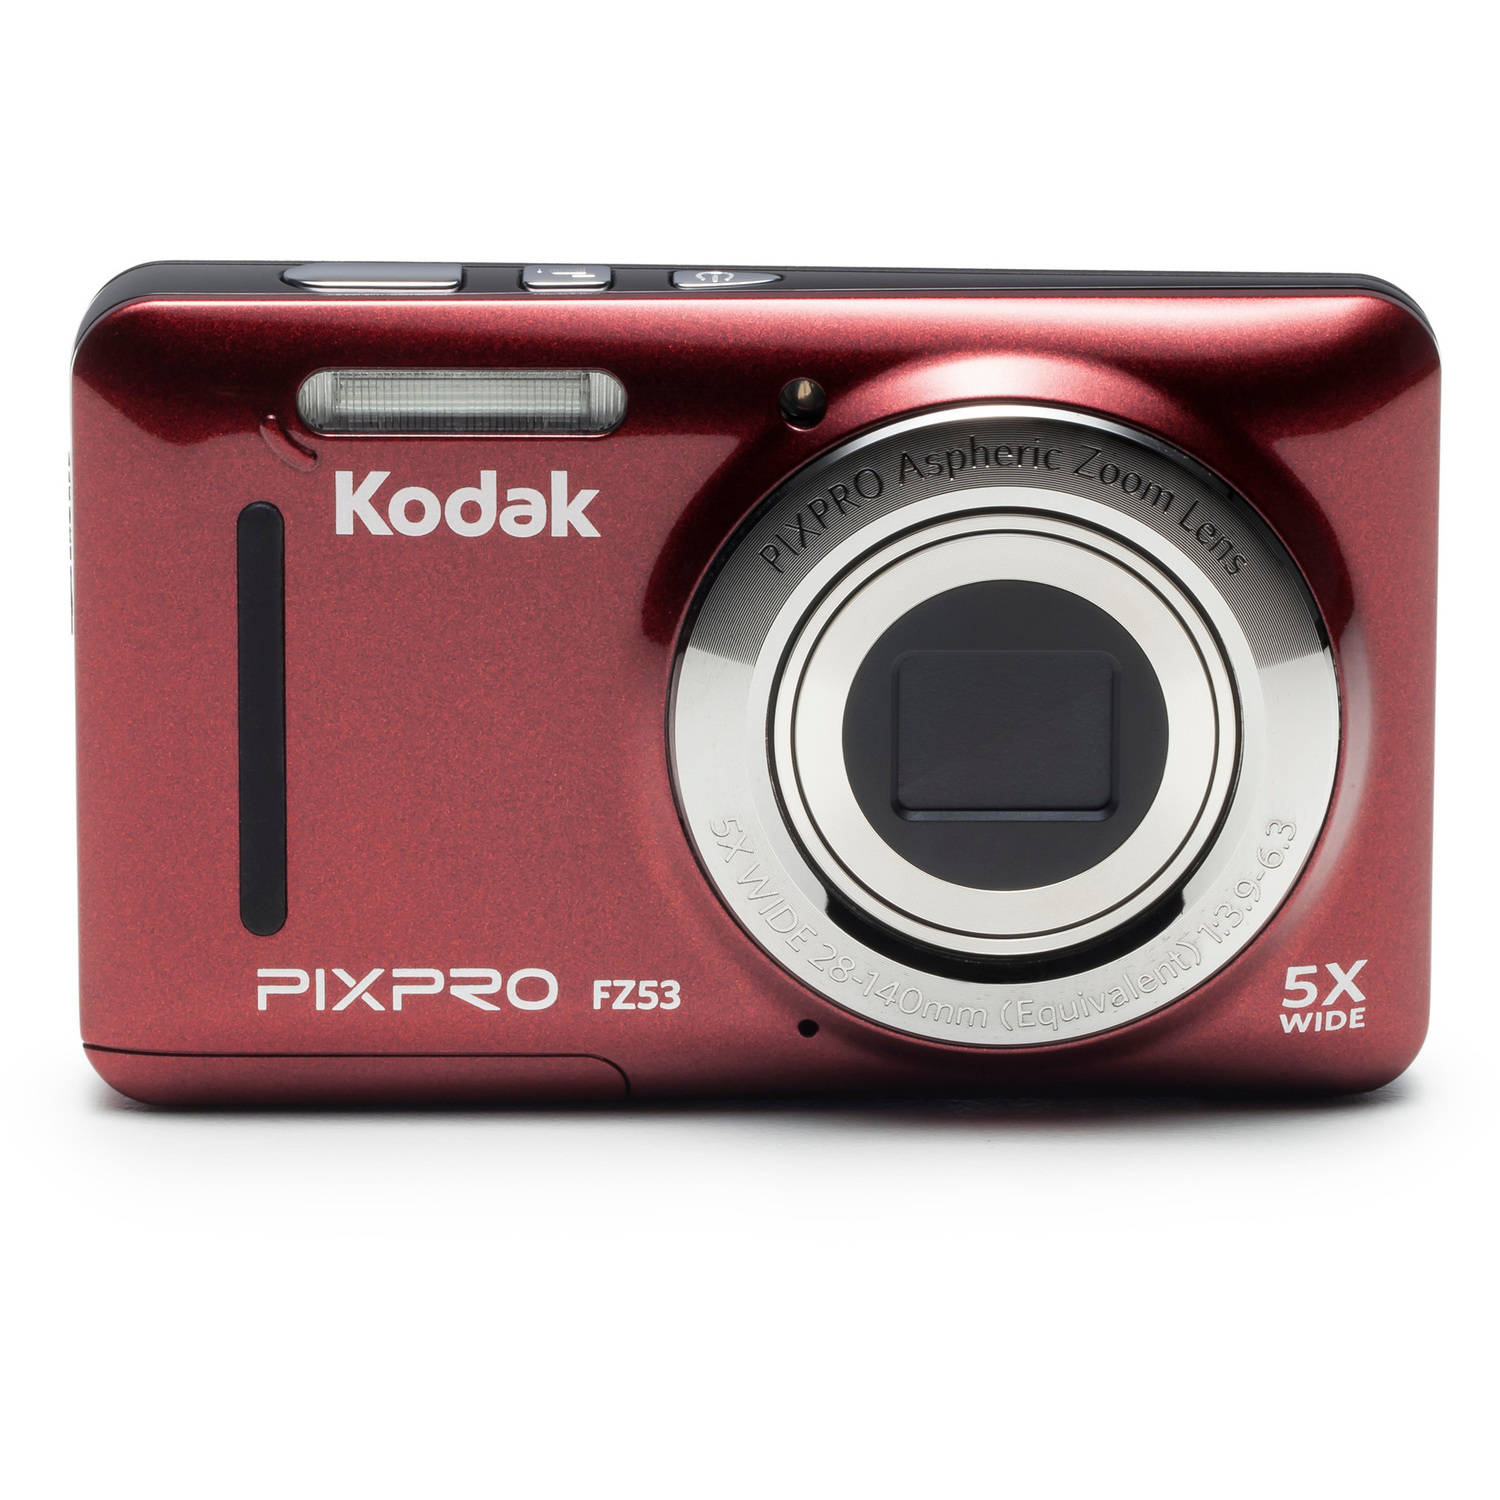 Kodak Red PIXPRO FZ53 Digital Camera with 16.15 Megapixels and 5x Optical Zoom